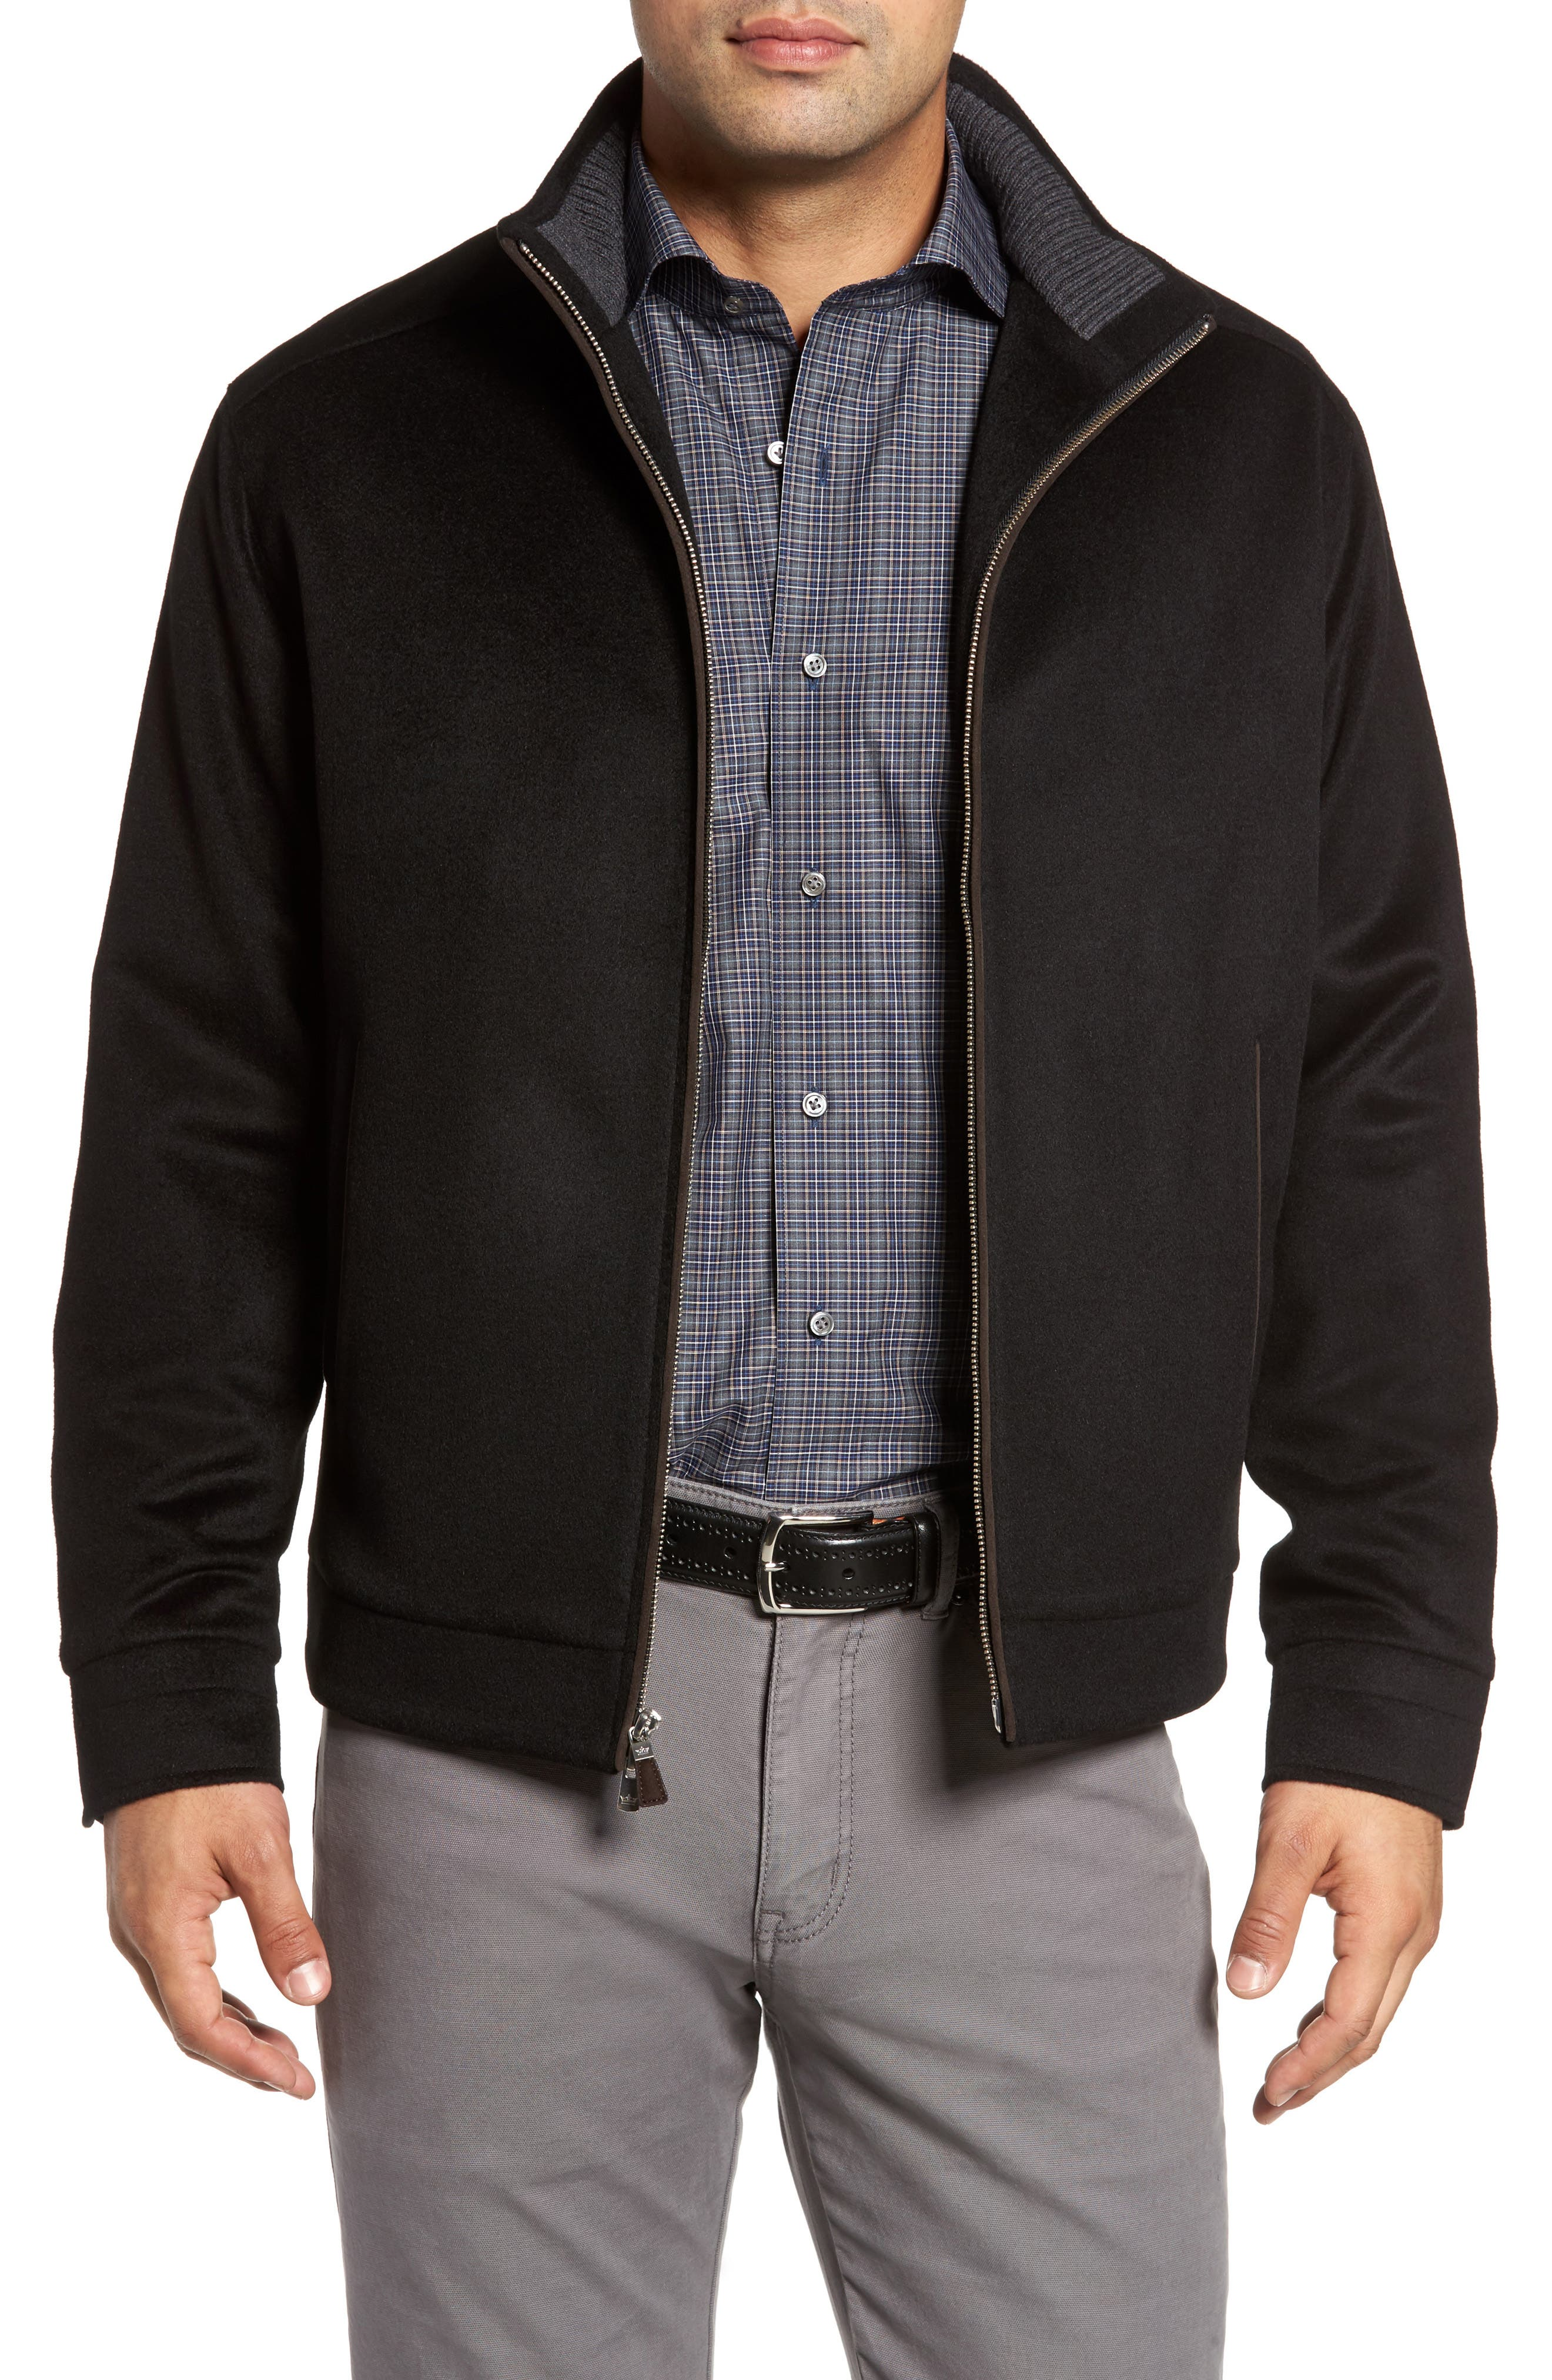 Westport Wool & Cashmere Jacket,                             Main thumbnail 1, color,                             001